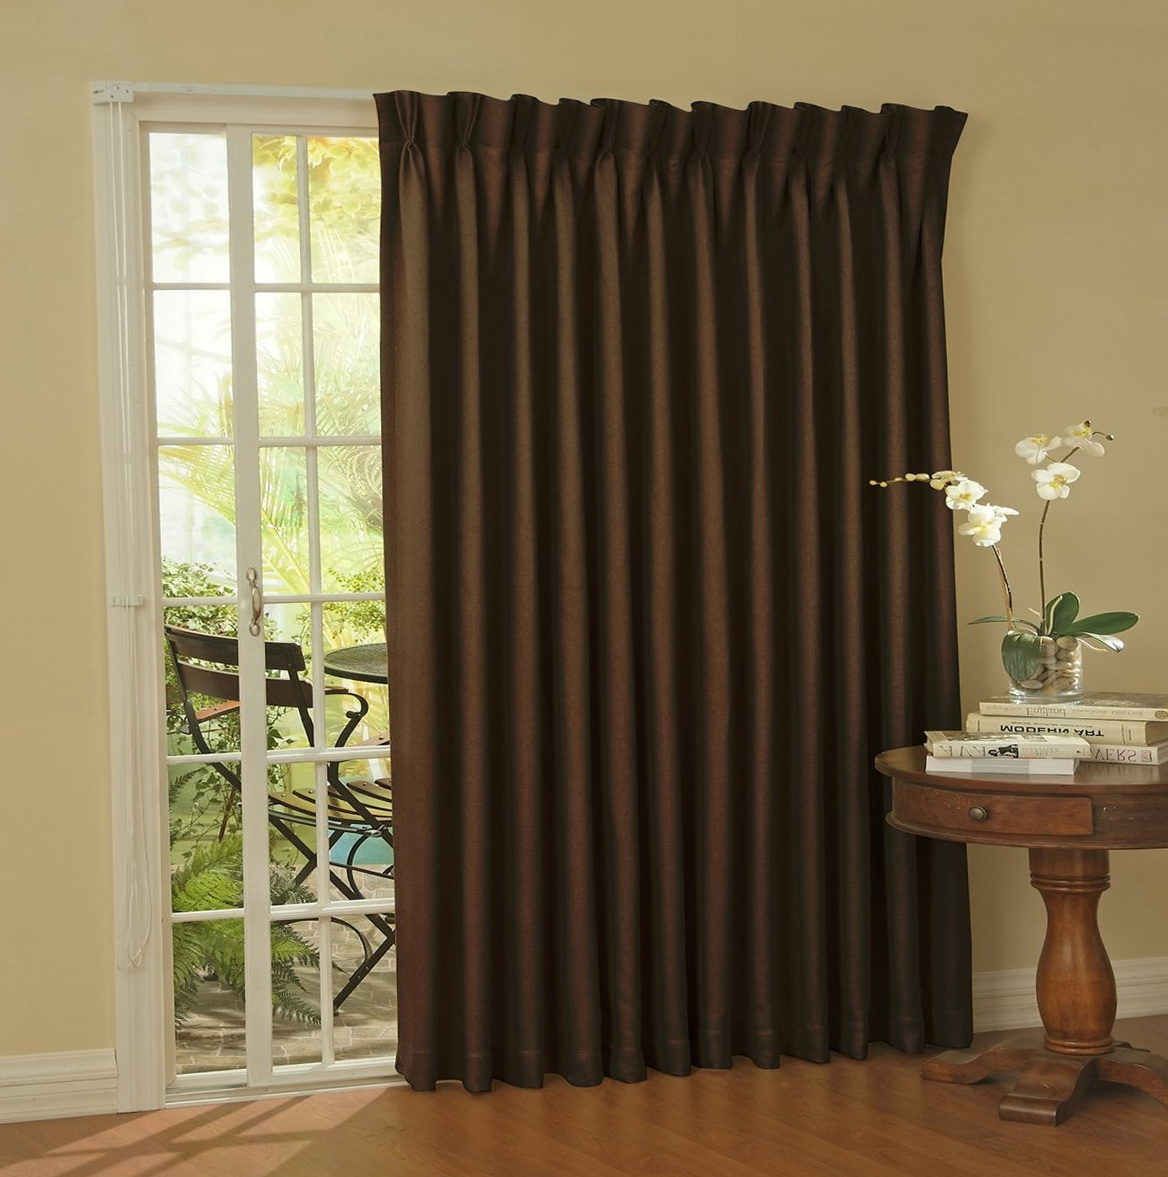 Noise Cancelling Curtains Amazon Home Design Ideas